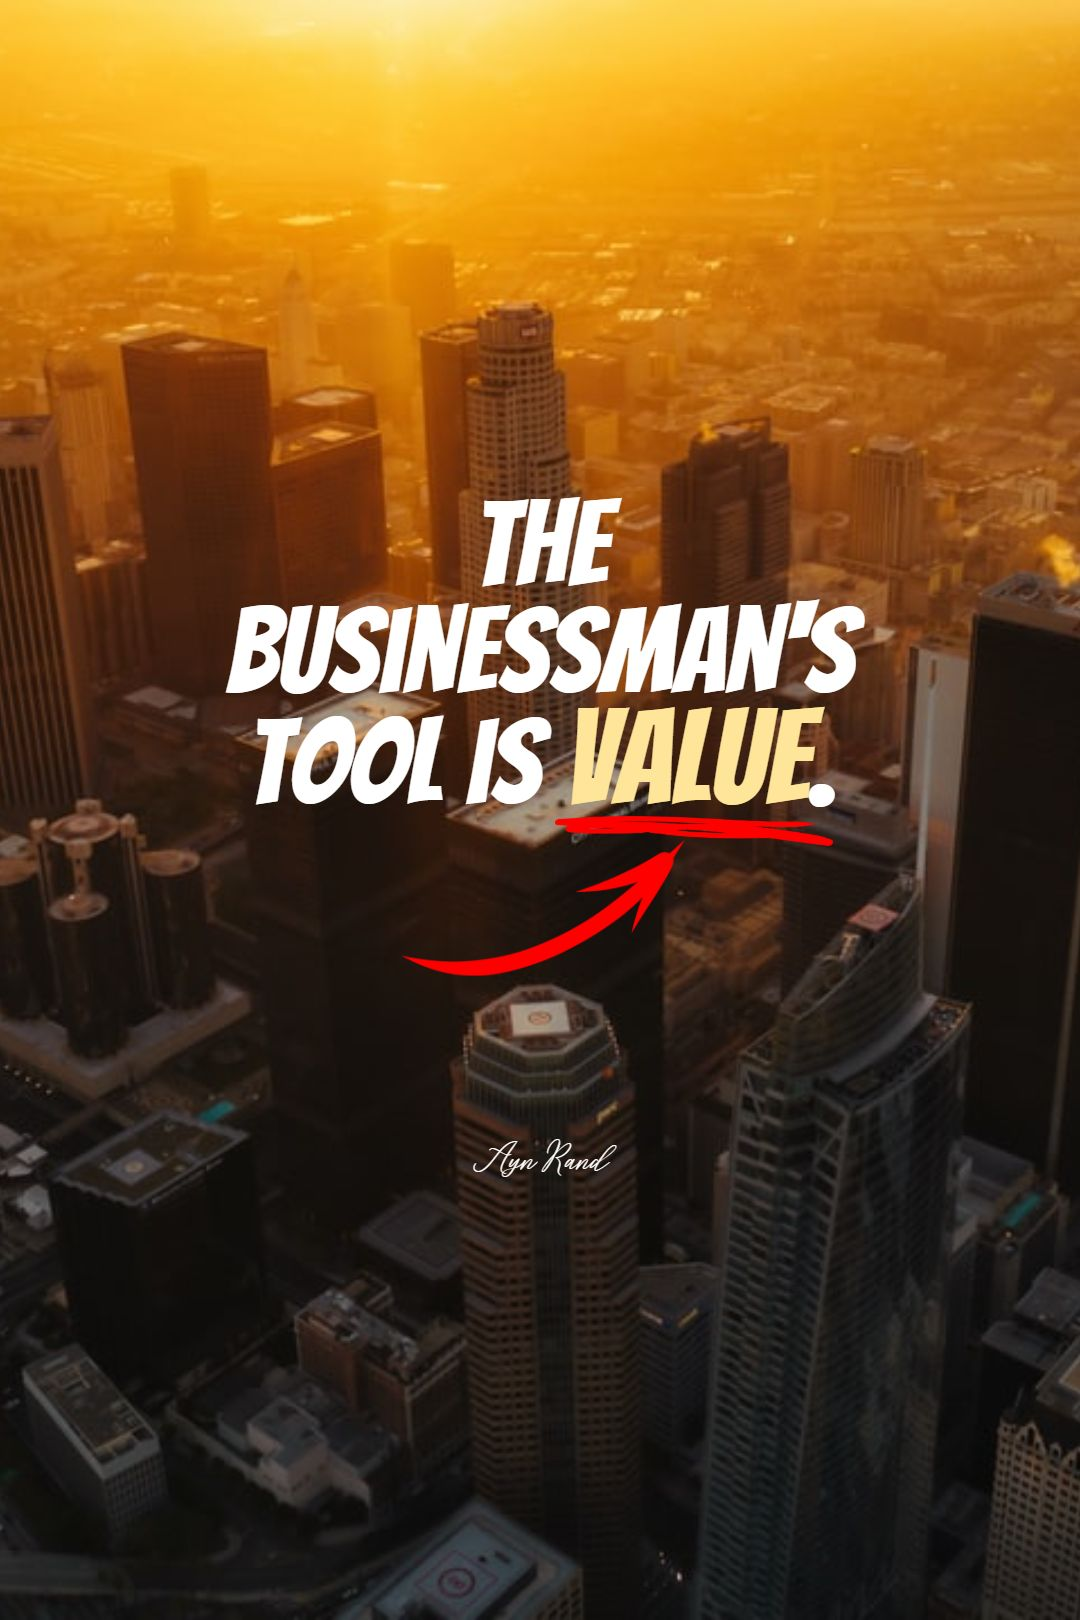 Quotes image of The businessman's tool is value.